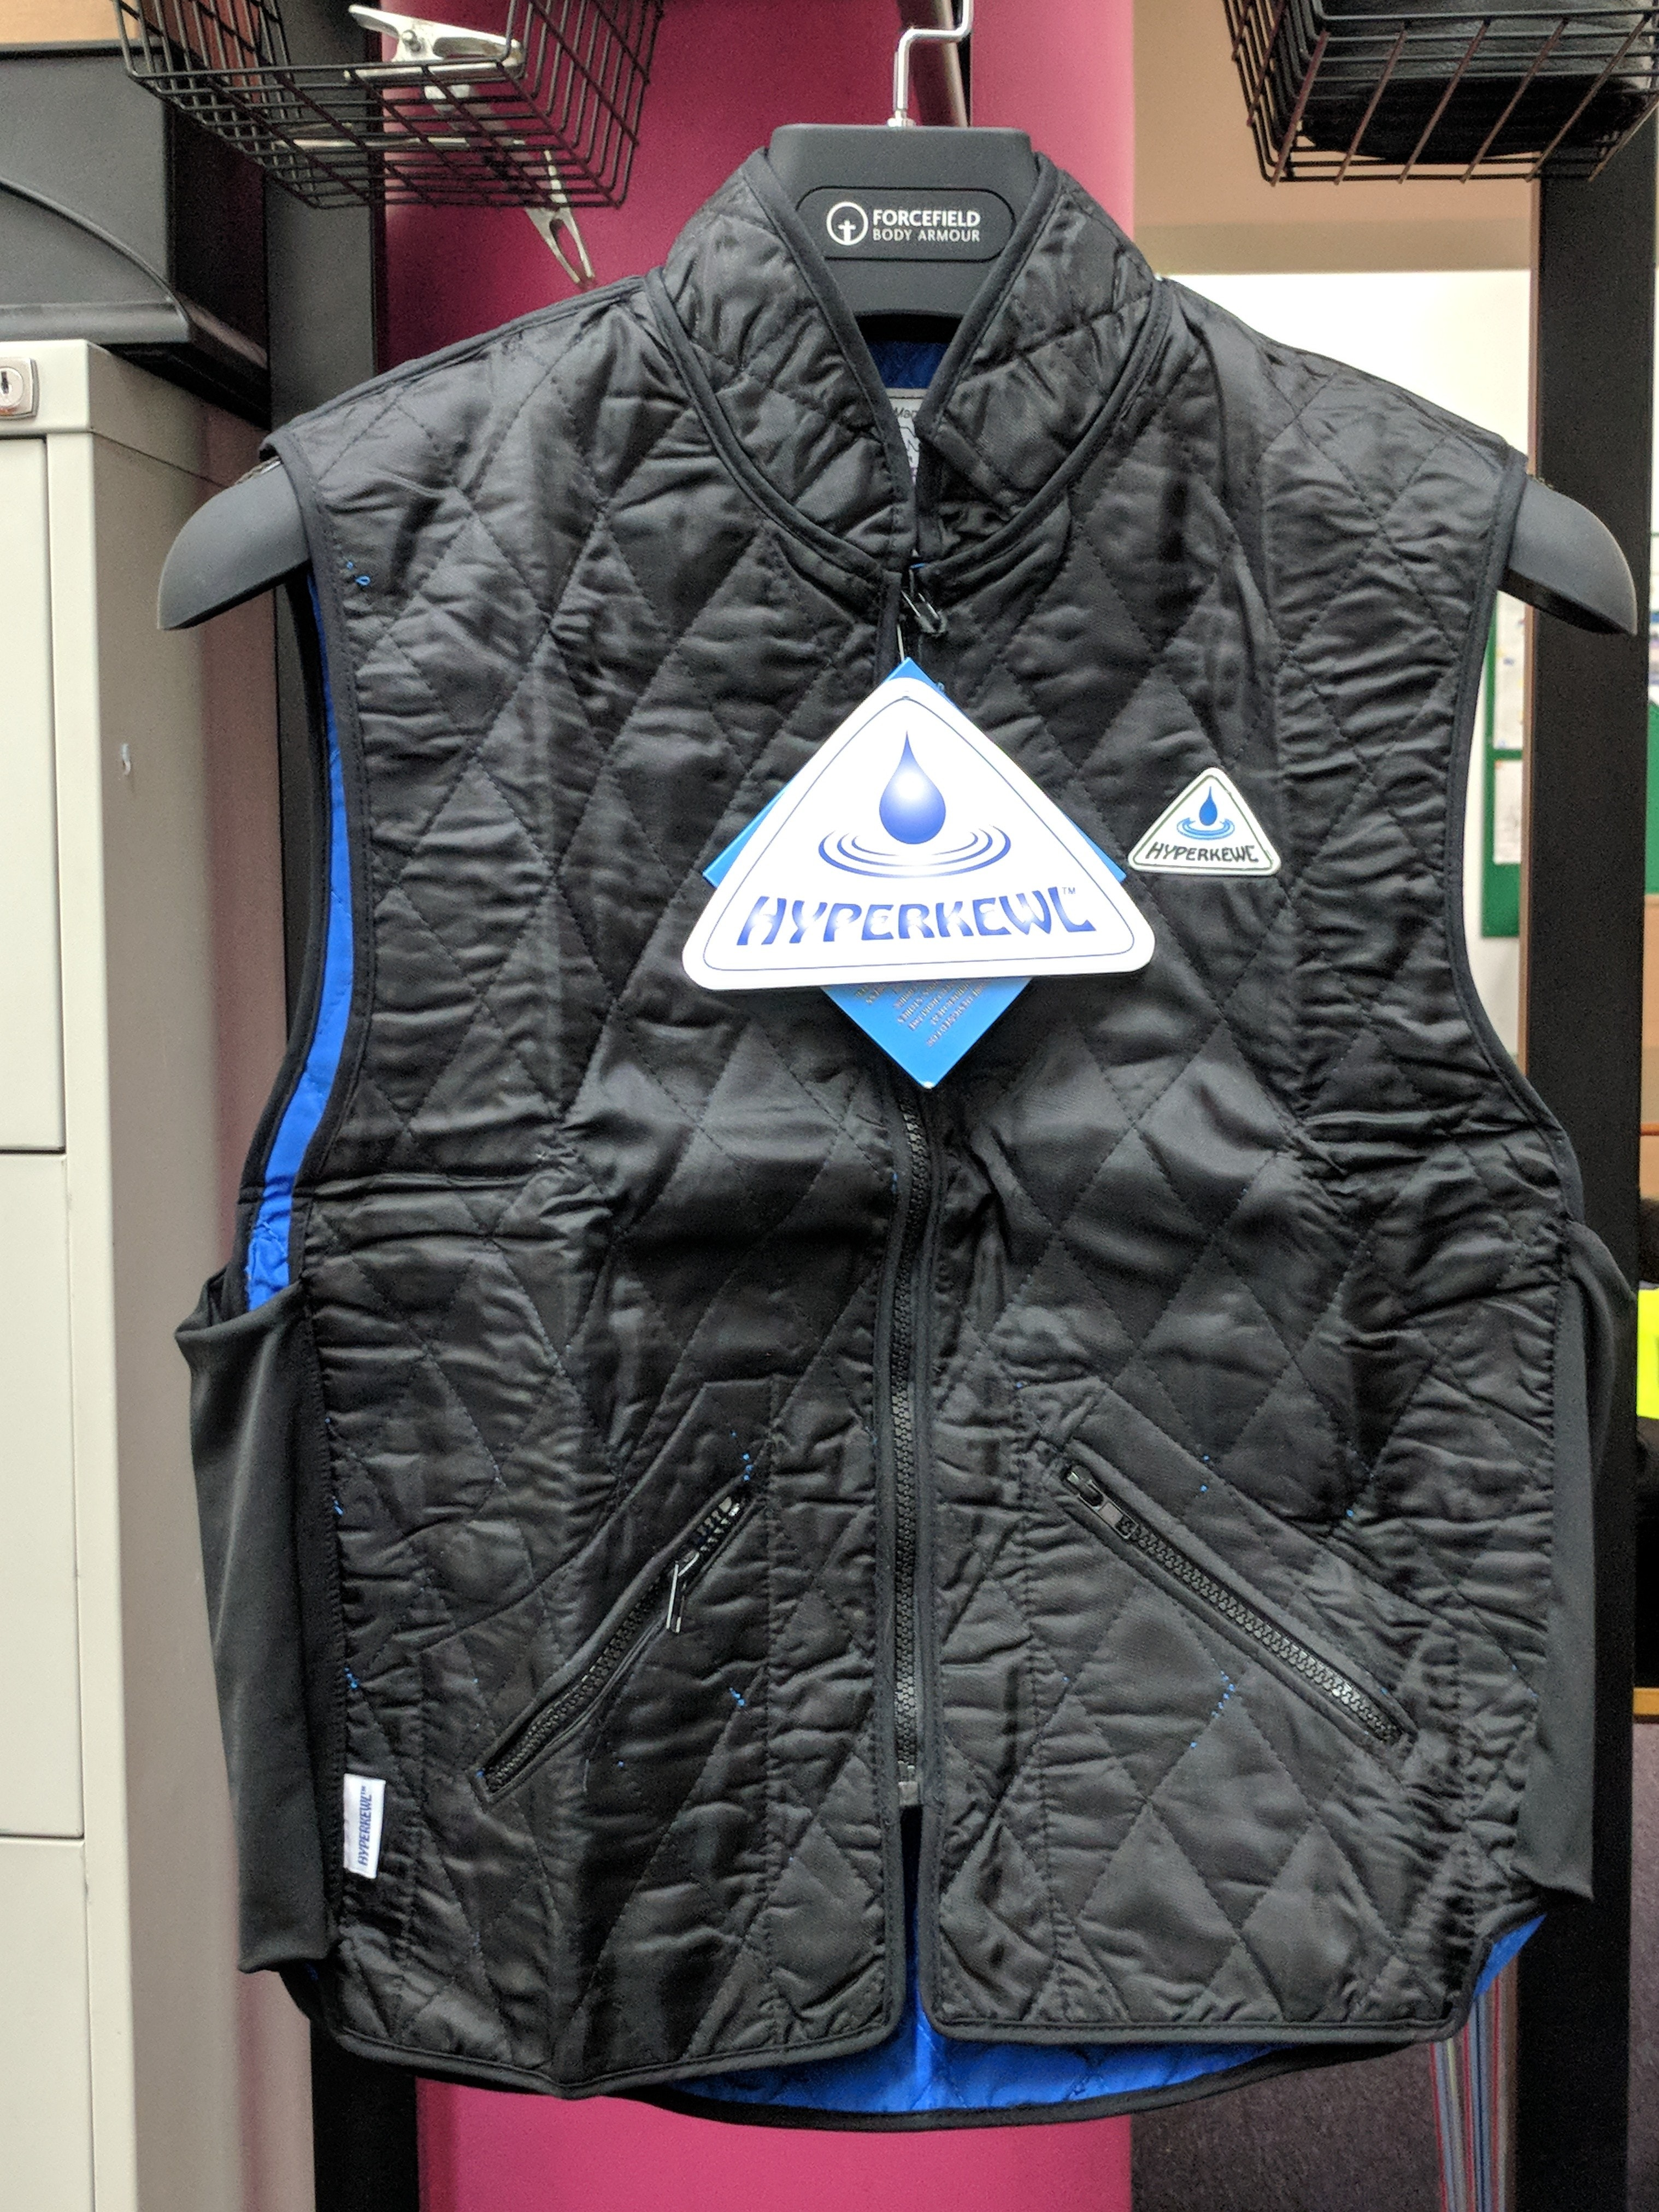 Hyperkewl Evaporative Cooling Vest sweepstakes